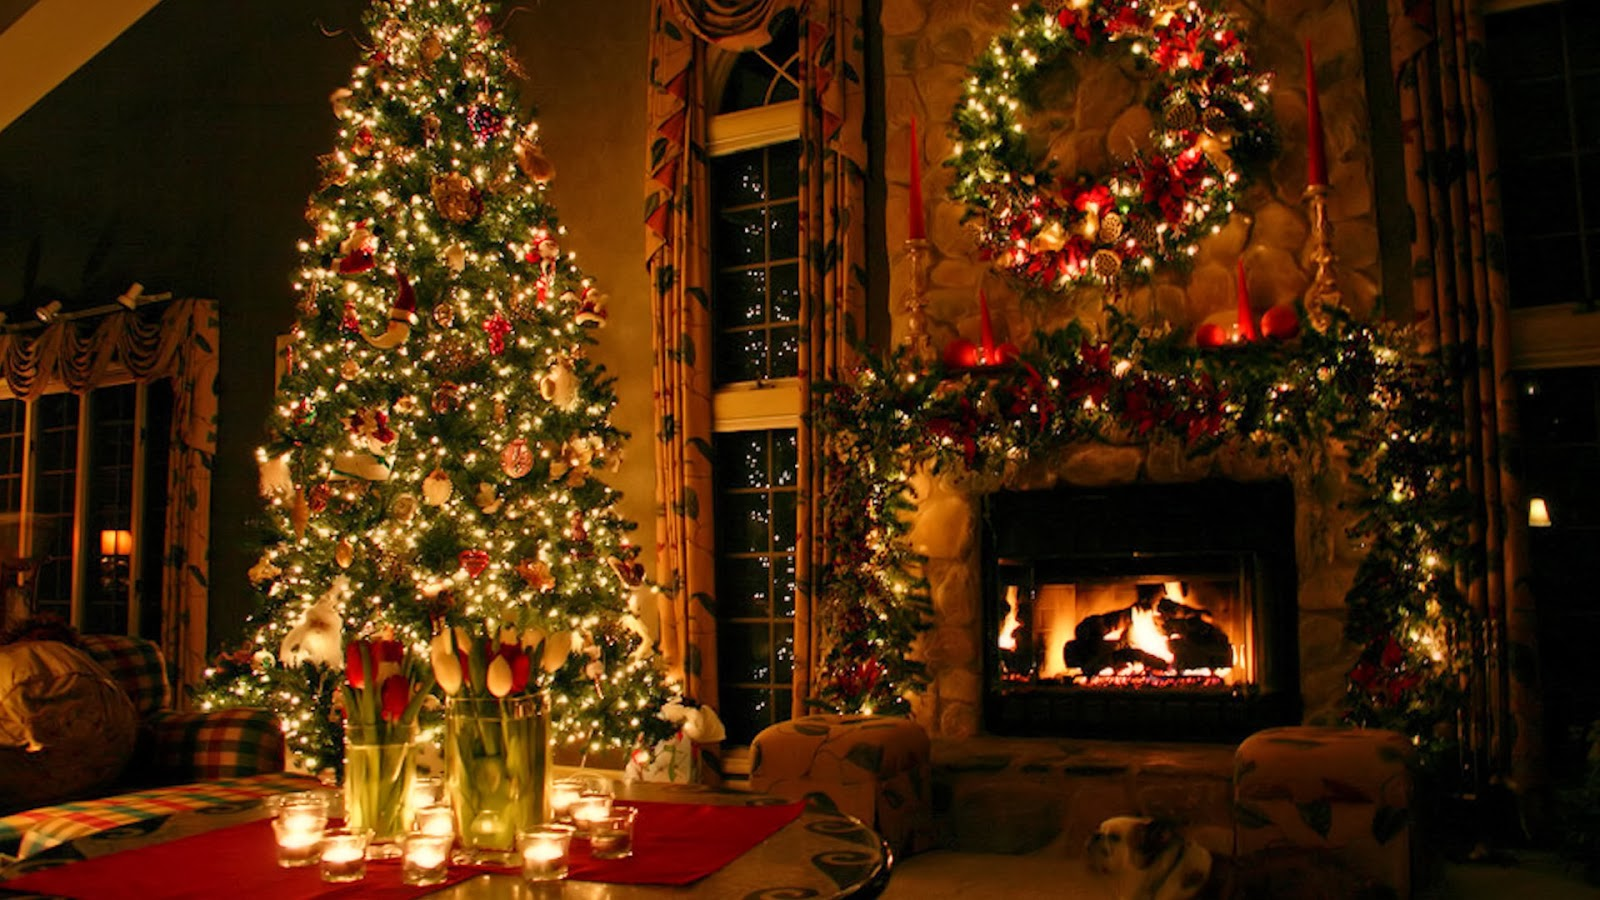 Christmas decorations ideas world top blogger for House and home christmas decor